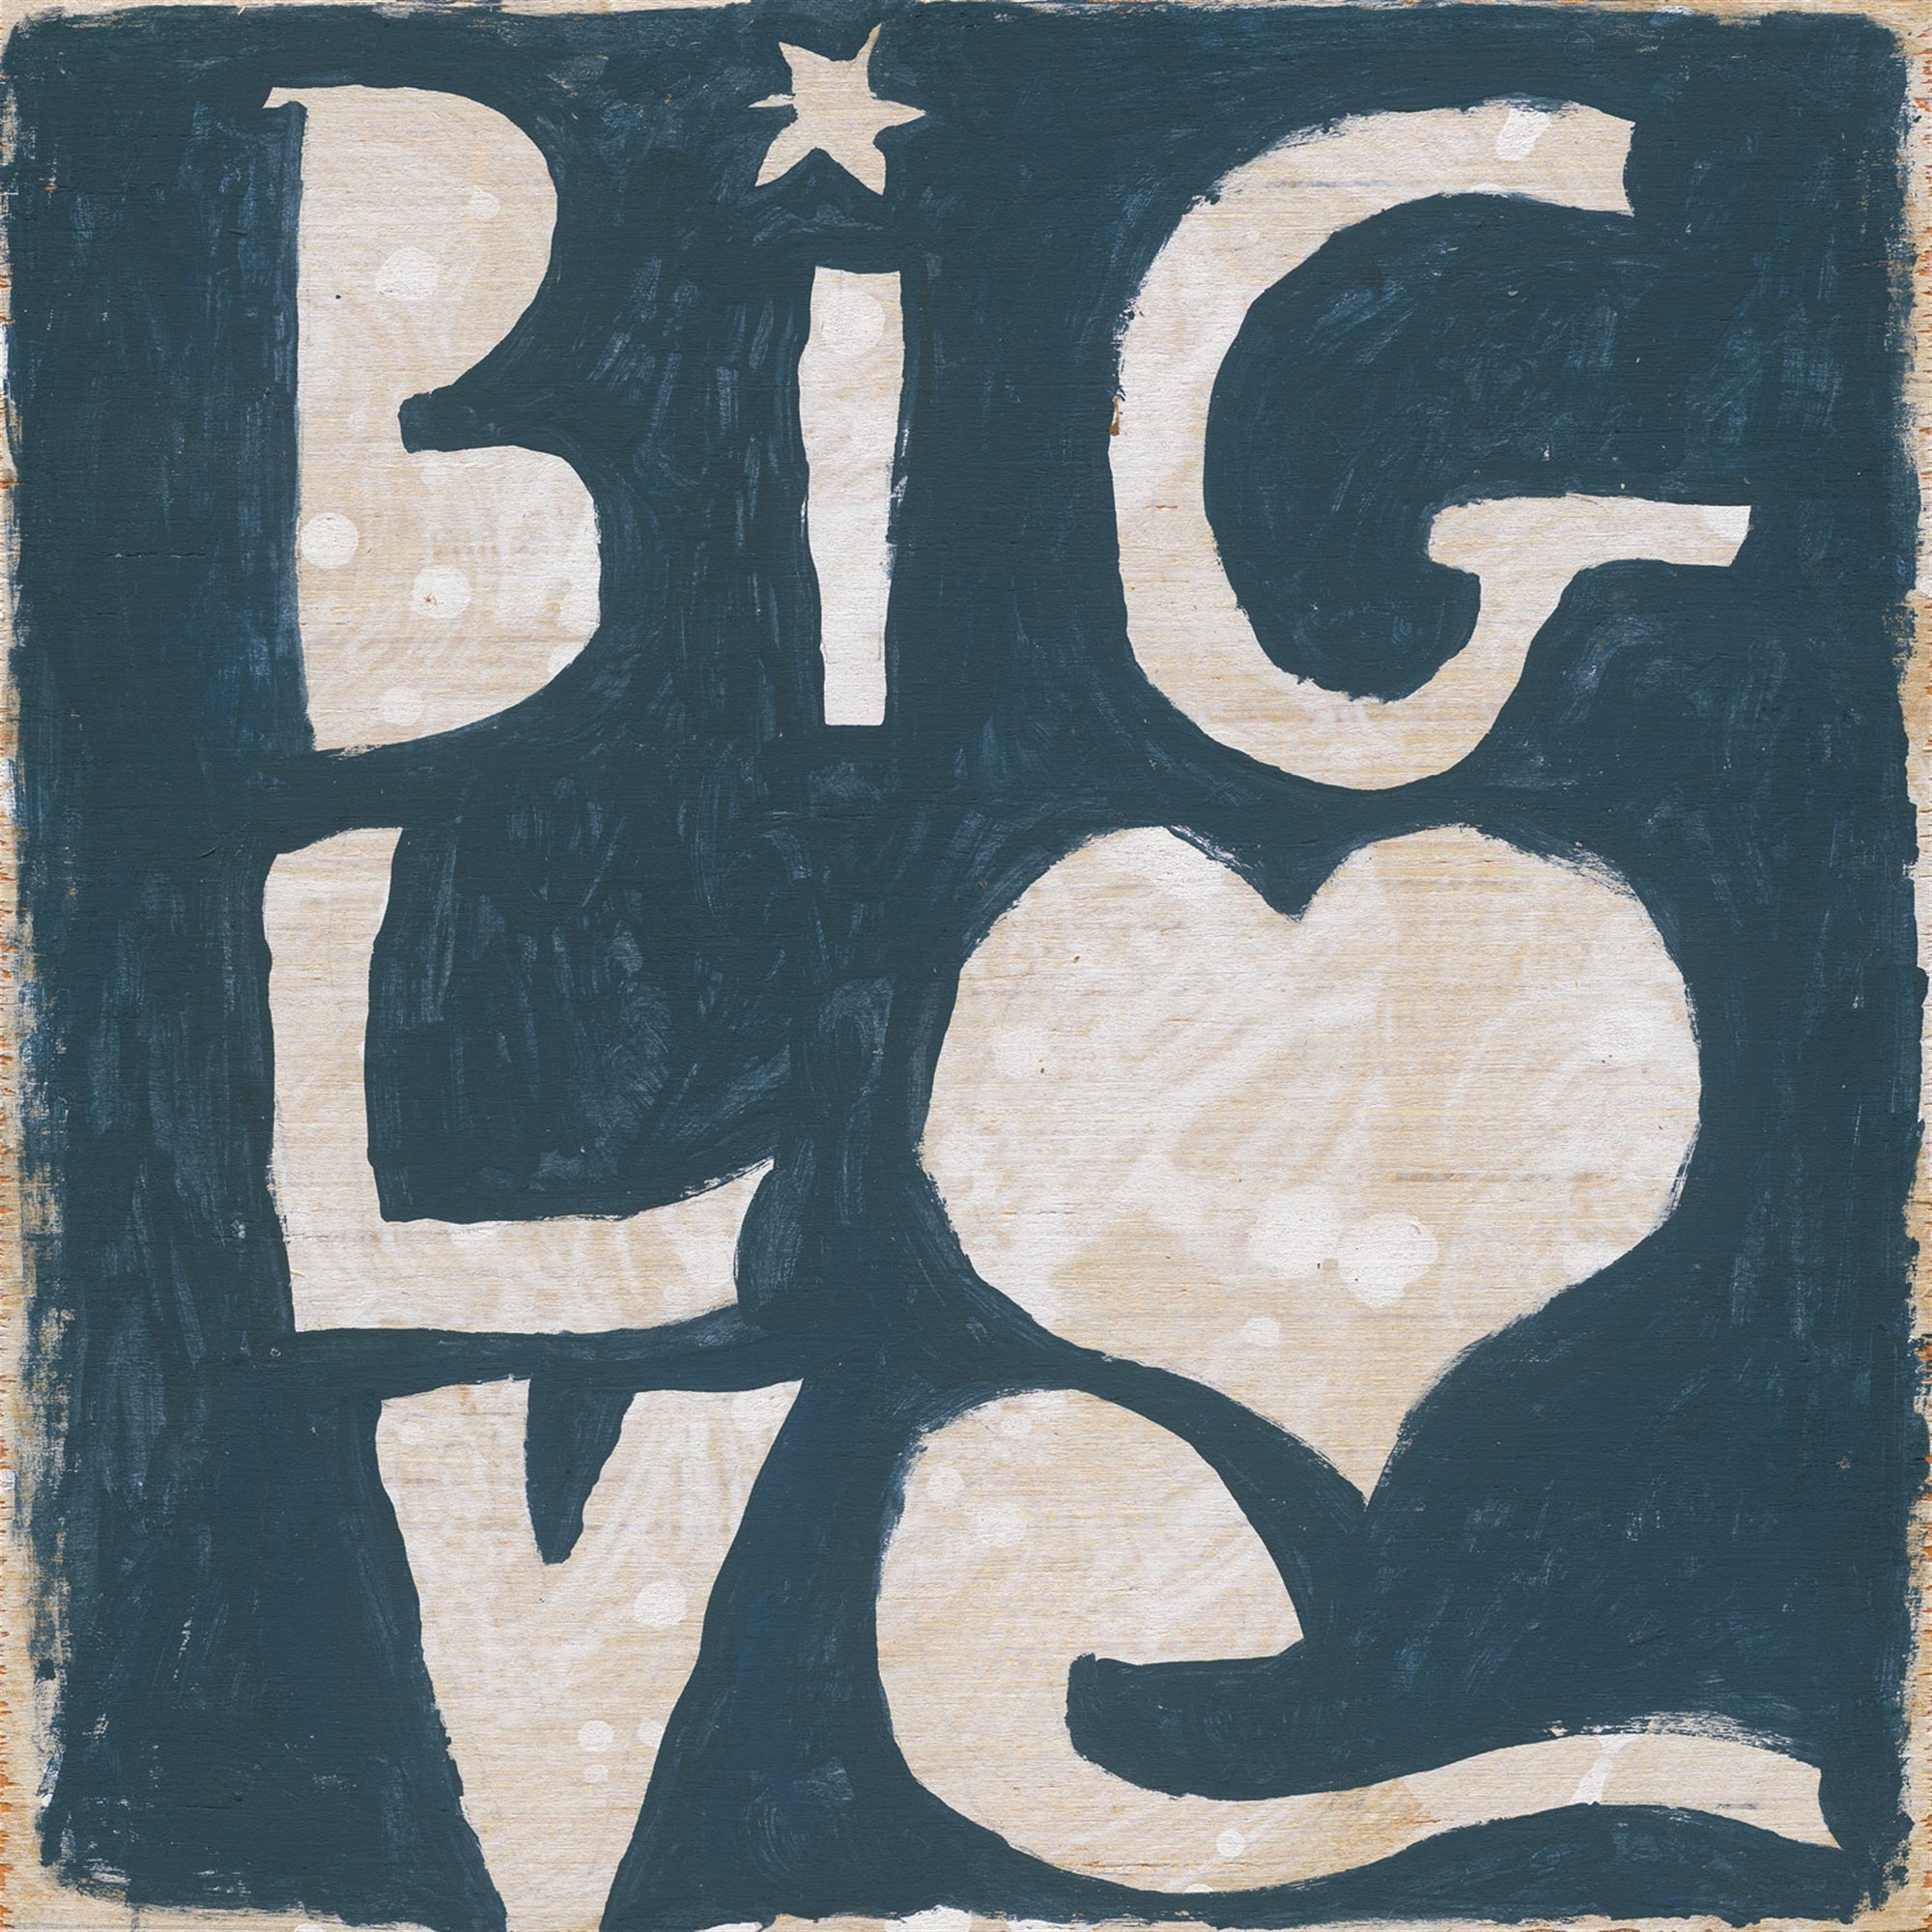 Big Love Print - Blackbird General Store